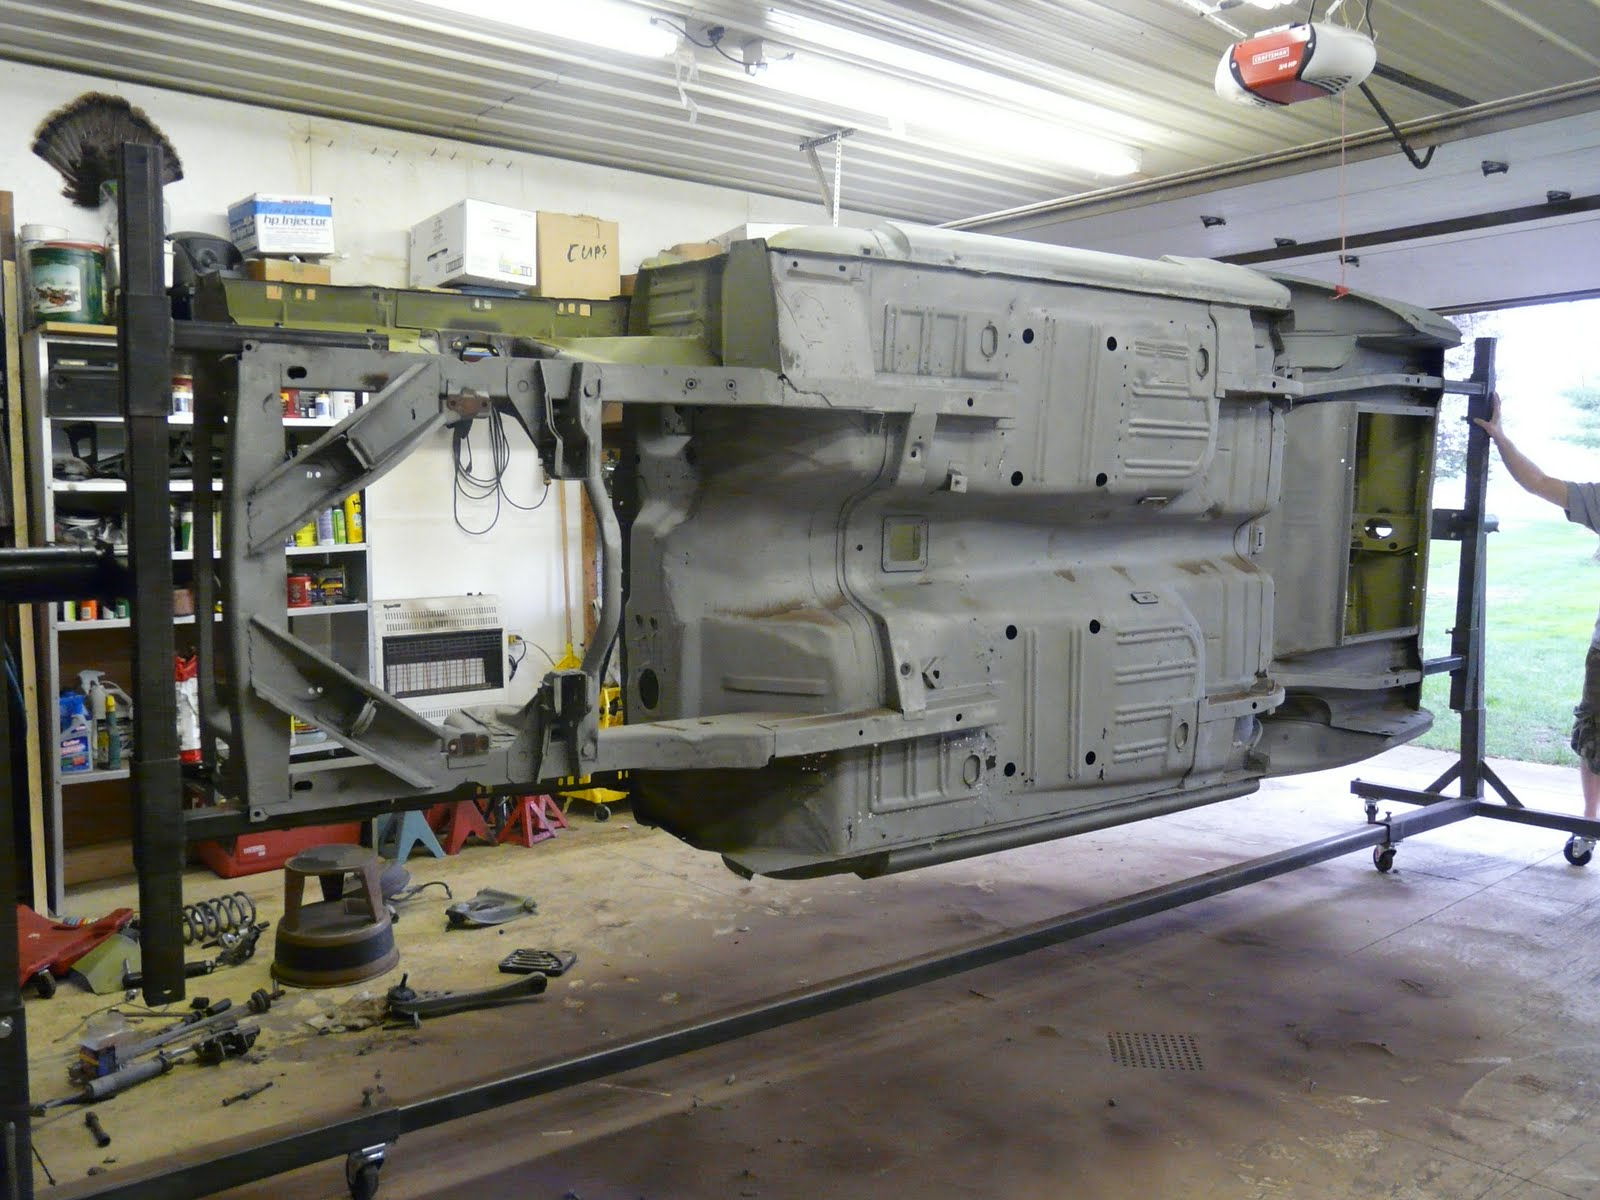 1967 Mustang Fastback >> 1967 Ford Mustang Resto Project: Rotisserie Mustang - It's whats for dinner!